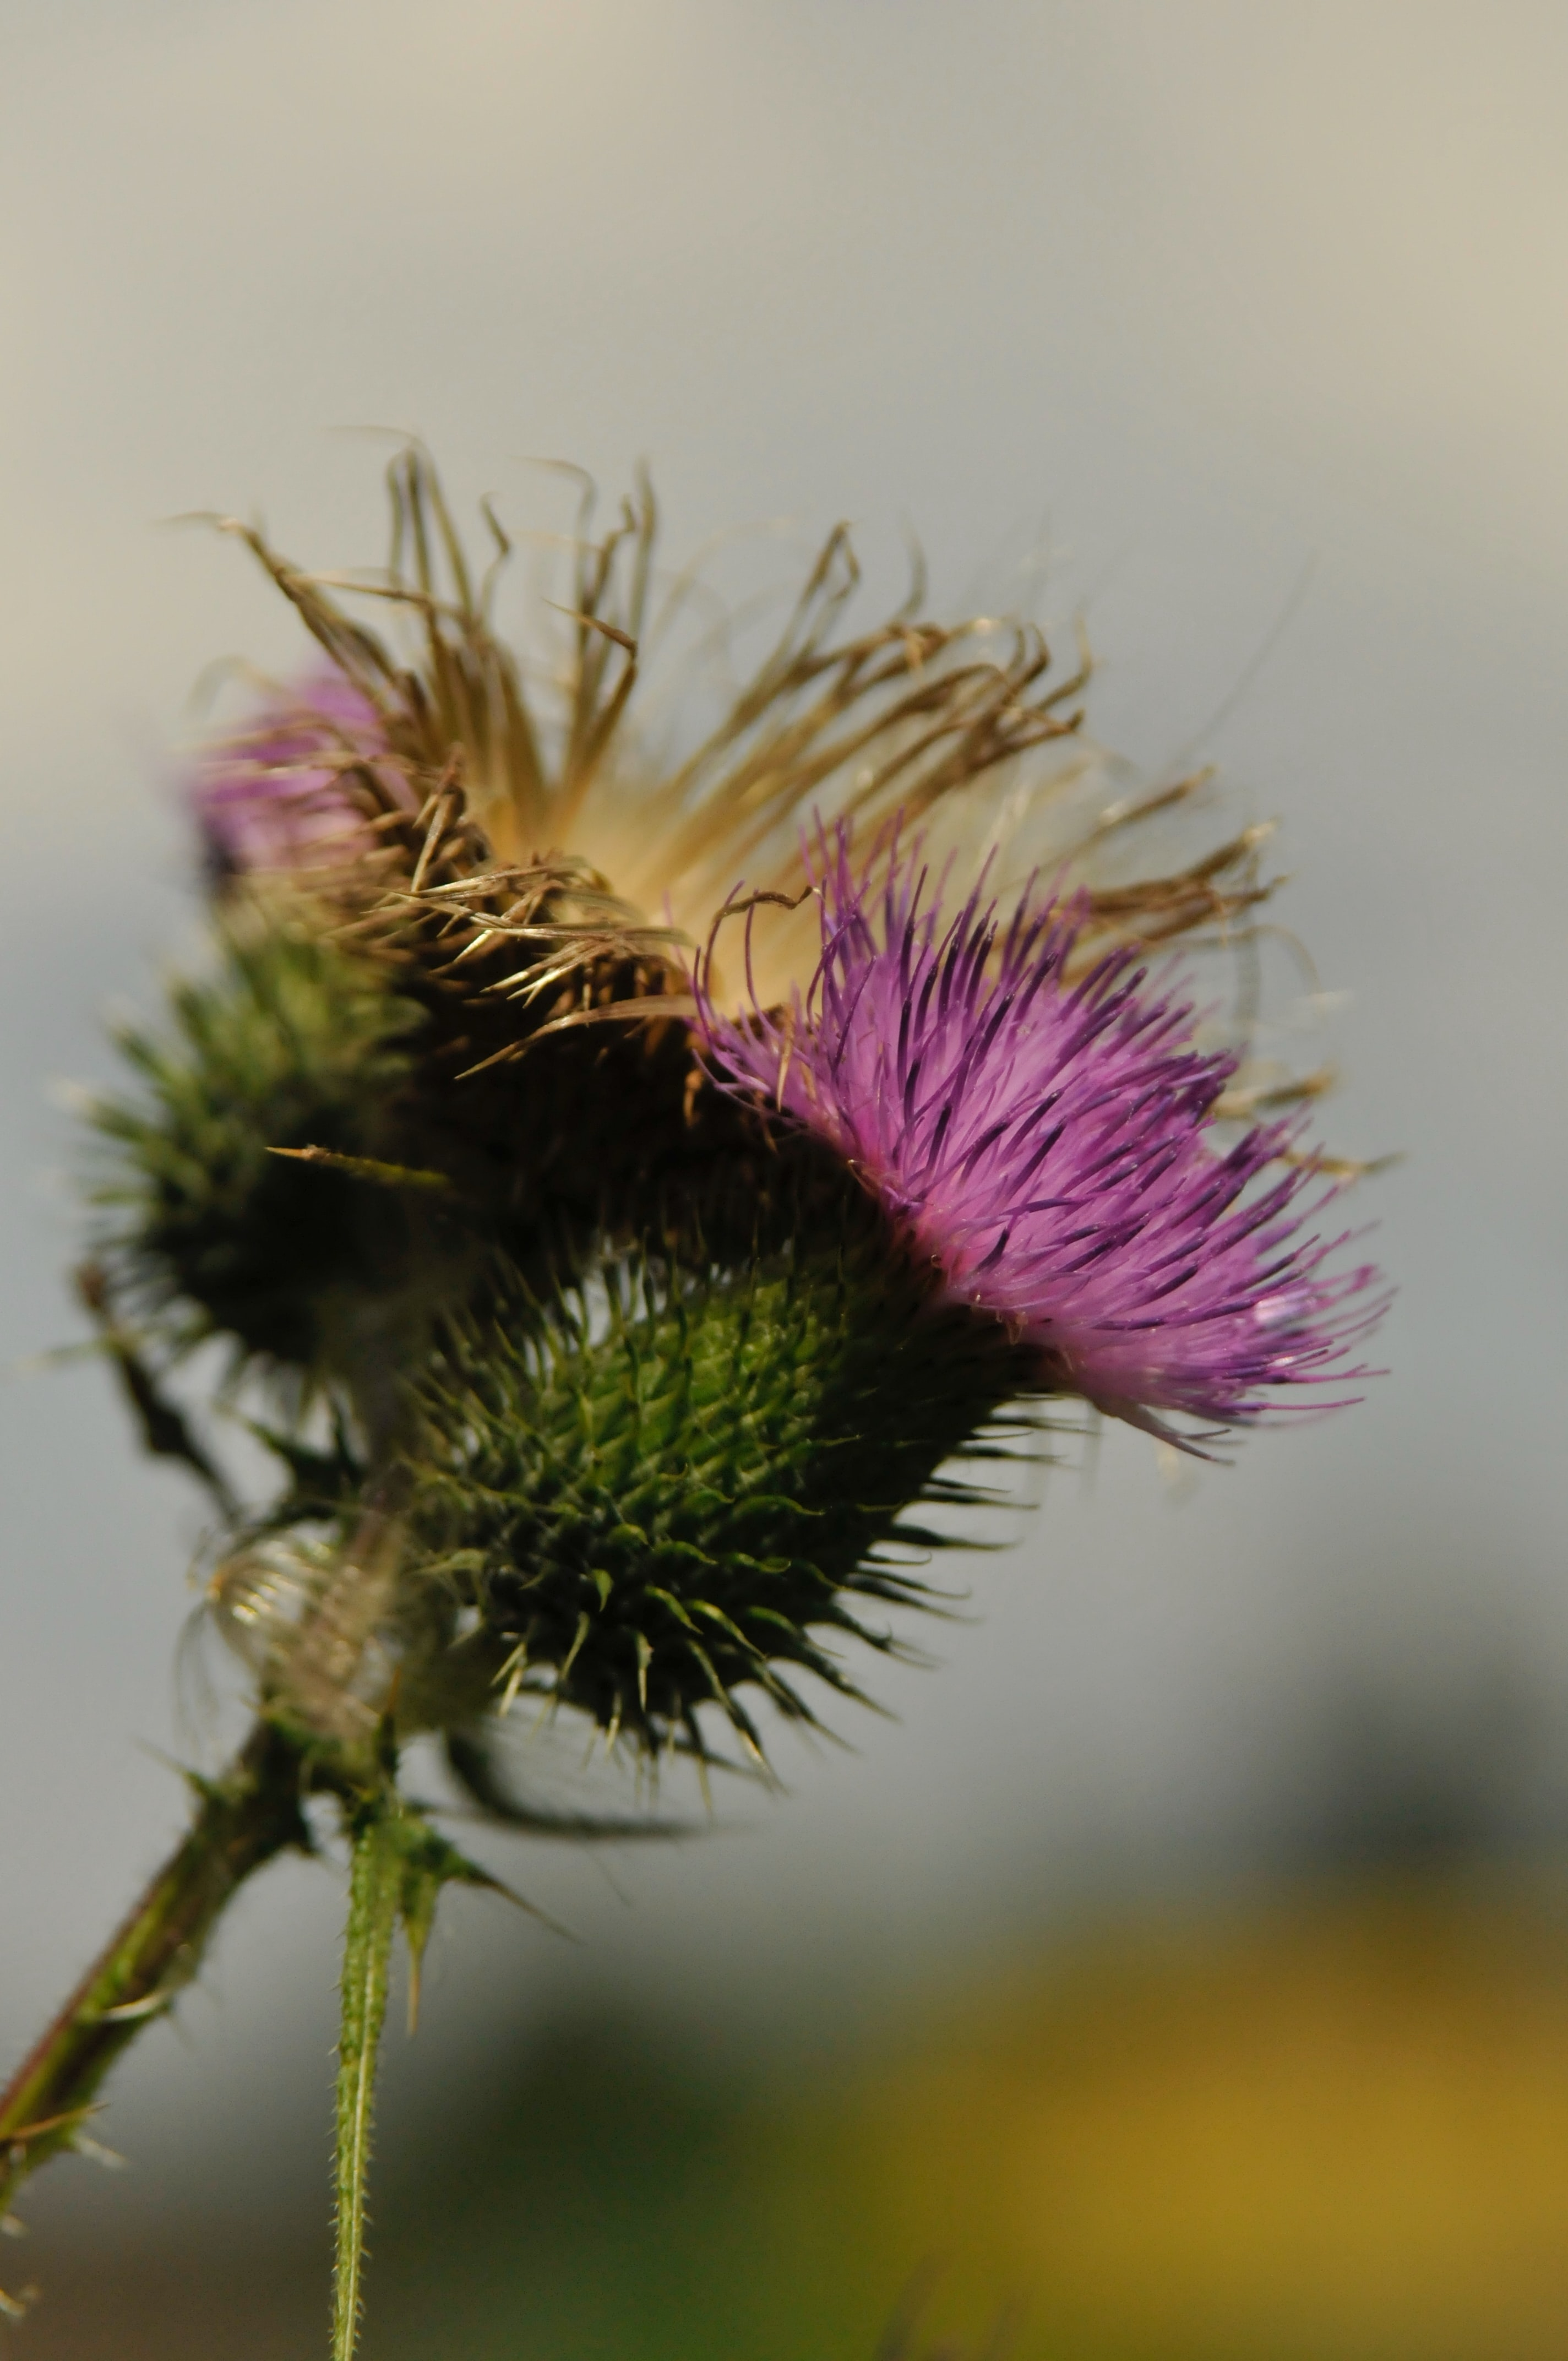 Does Milk Thistle Help With Blood Sugar?